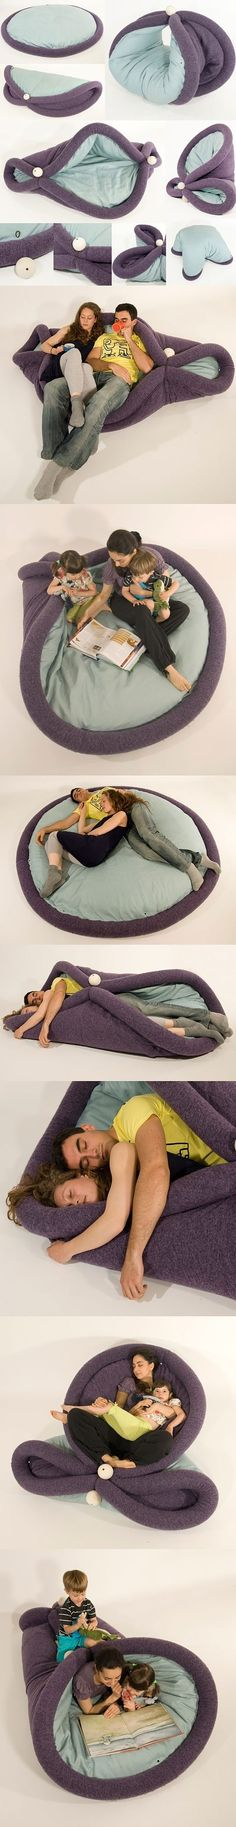 people burrito! this is so cool!